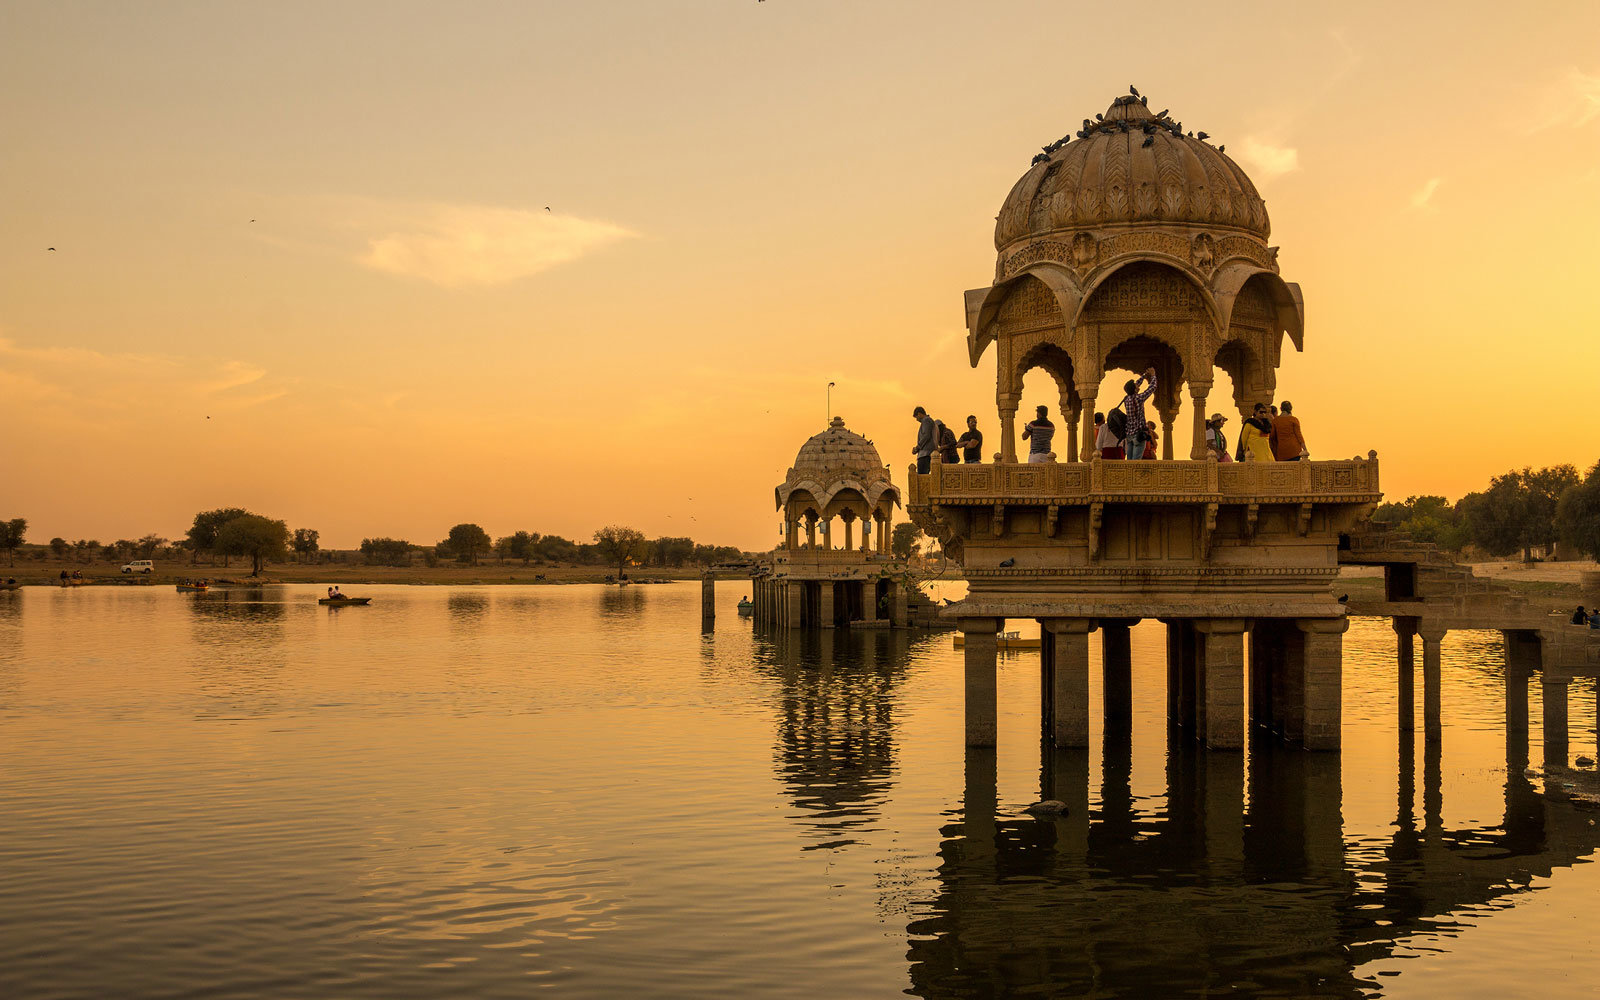 Sunset in Rajasthan, India